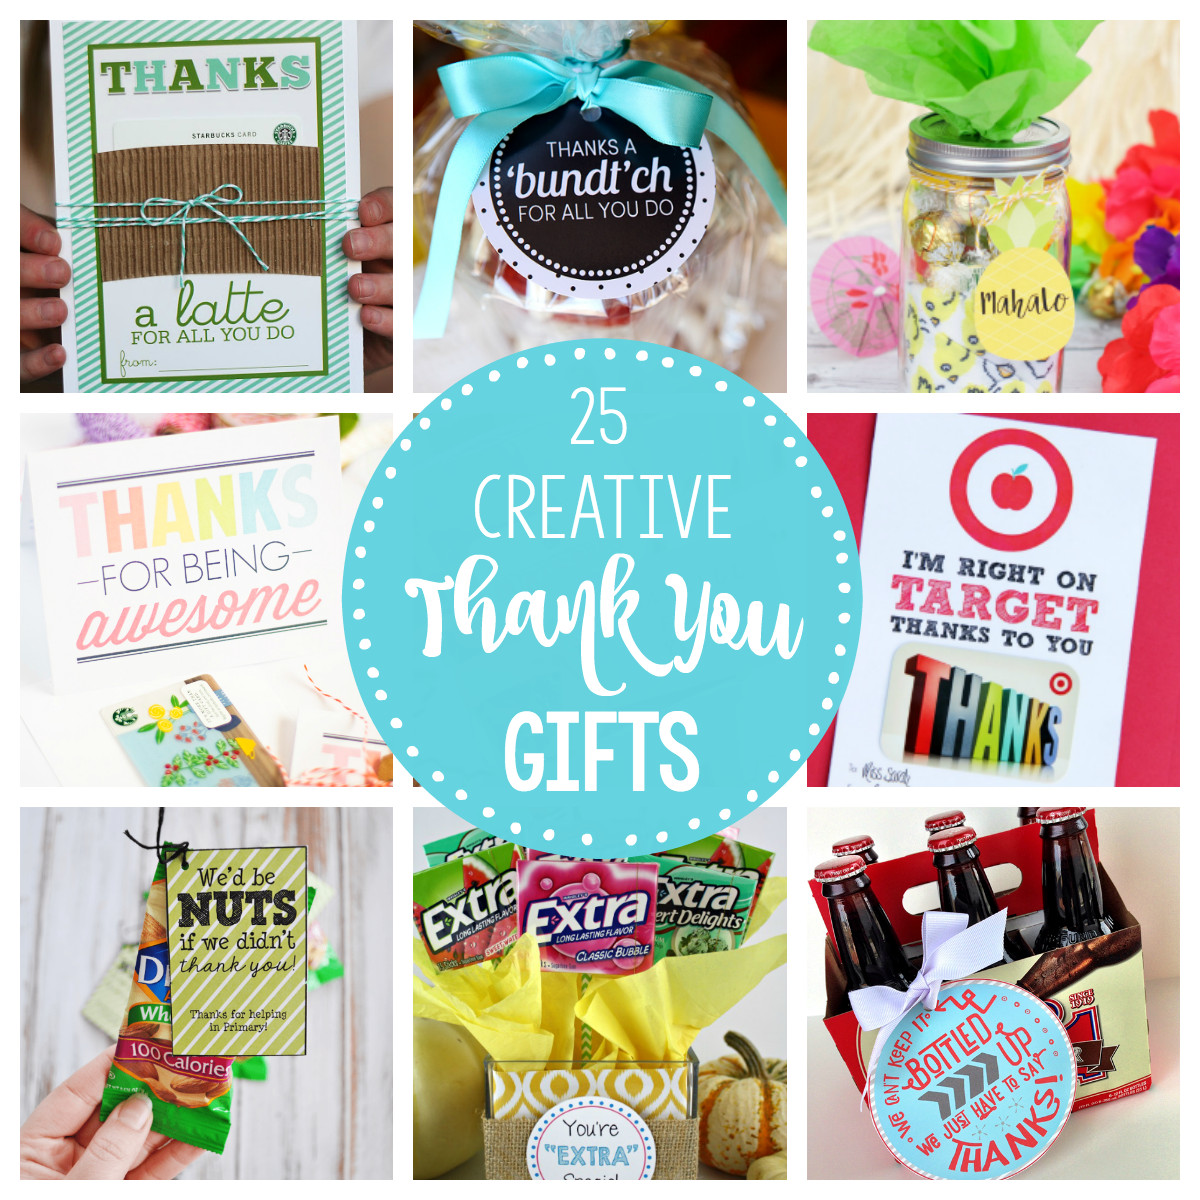 Business Thank You Gift Ideas  25 Creative & Unique Thank You Gifts – Fun Squared